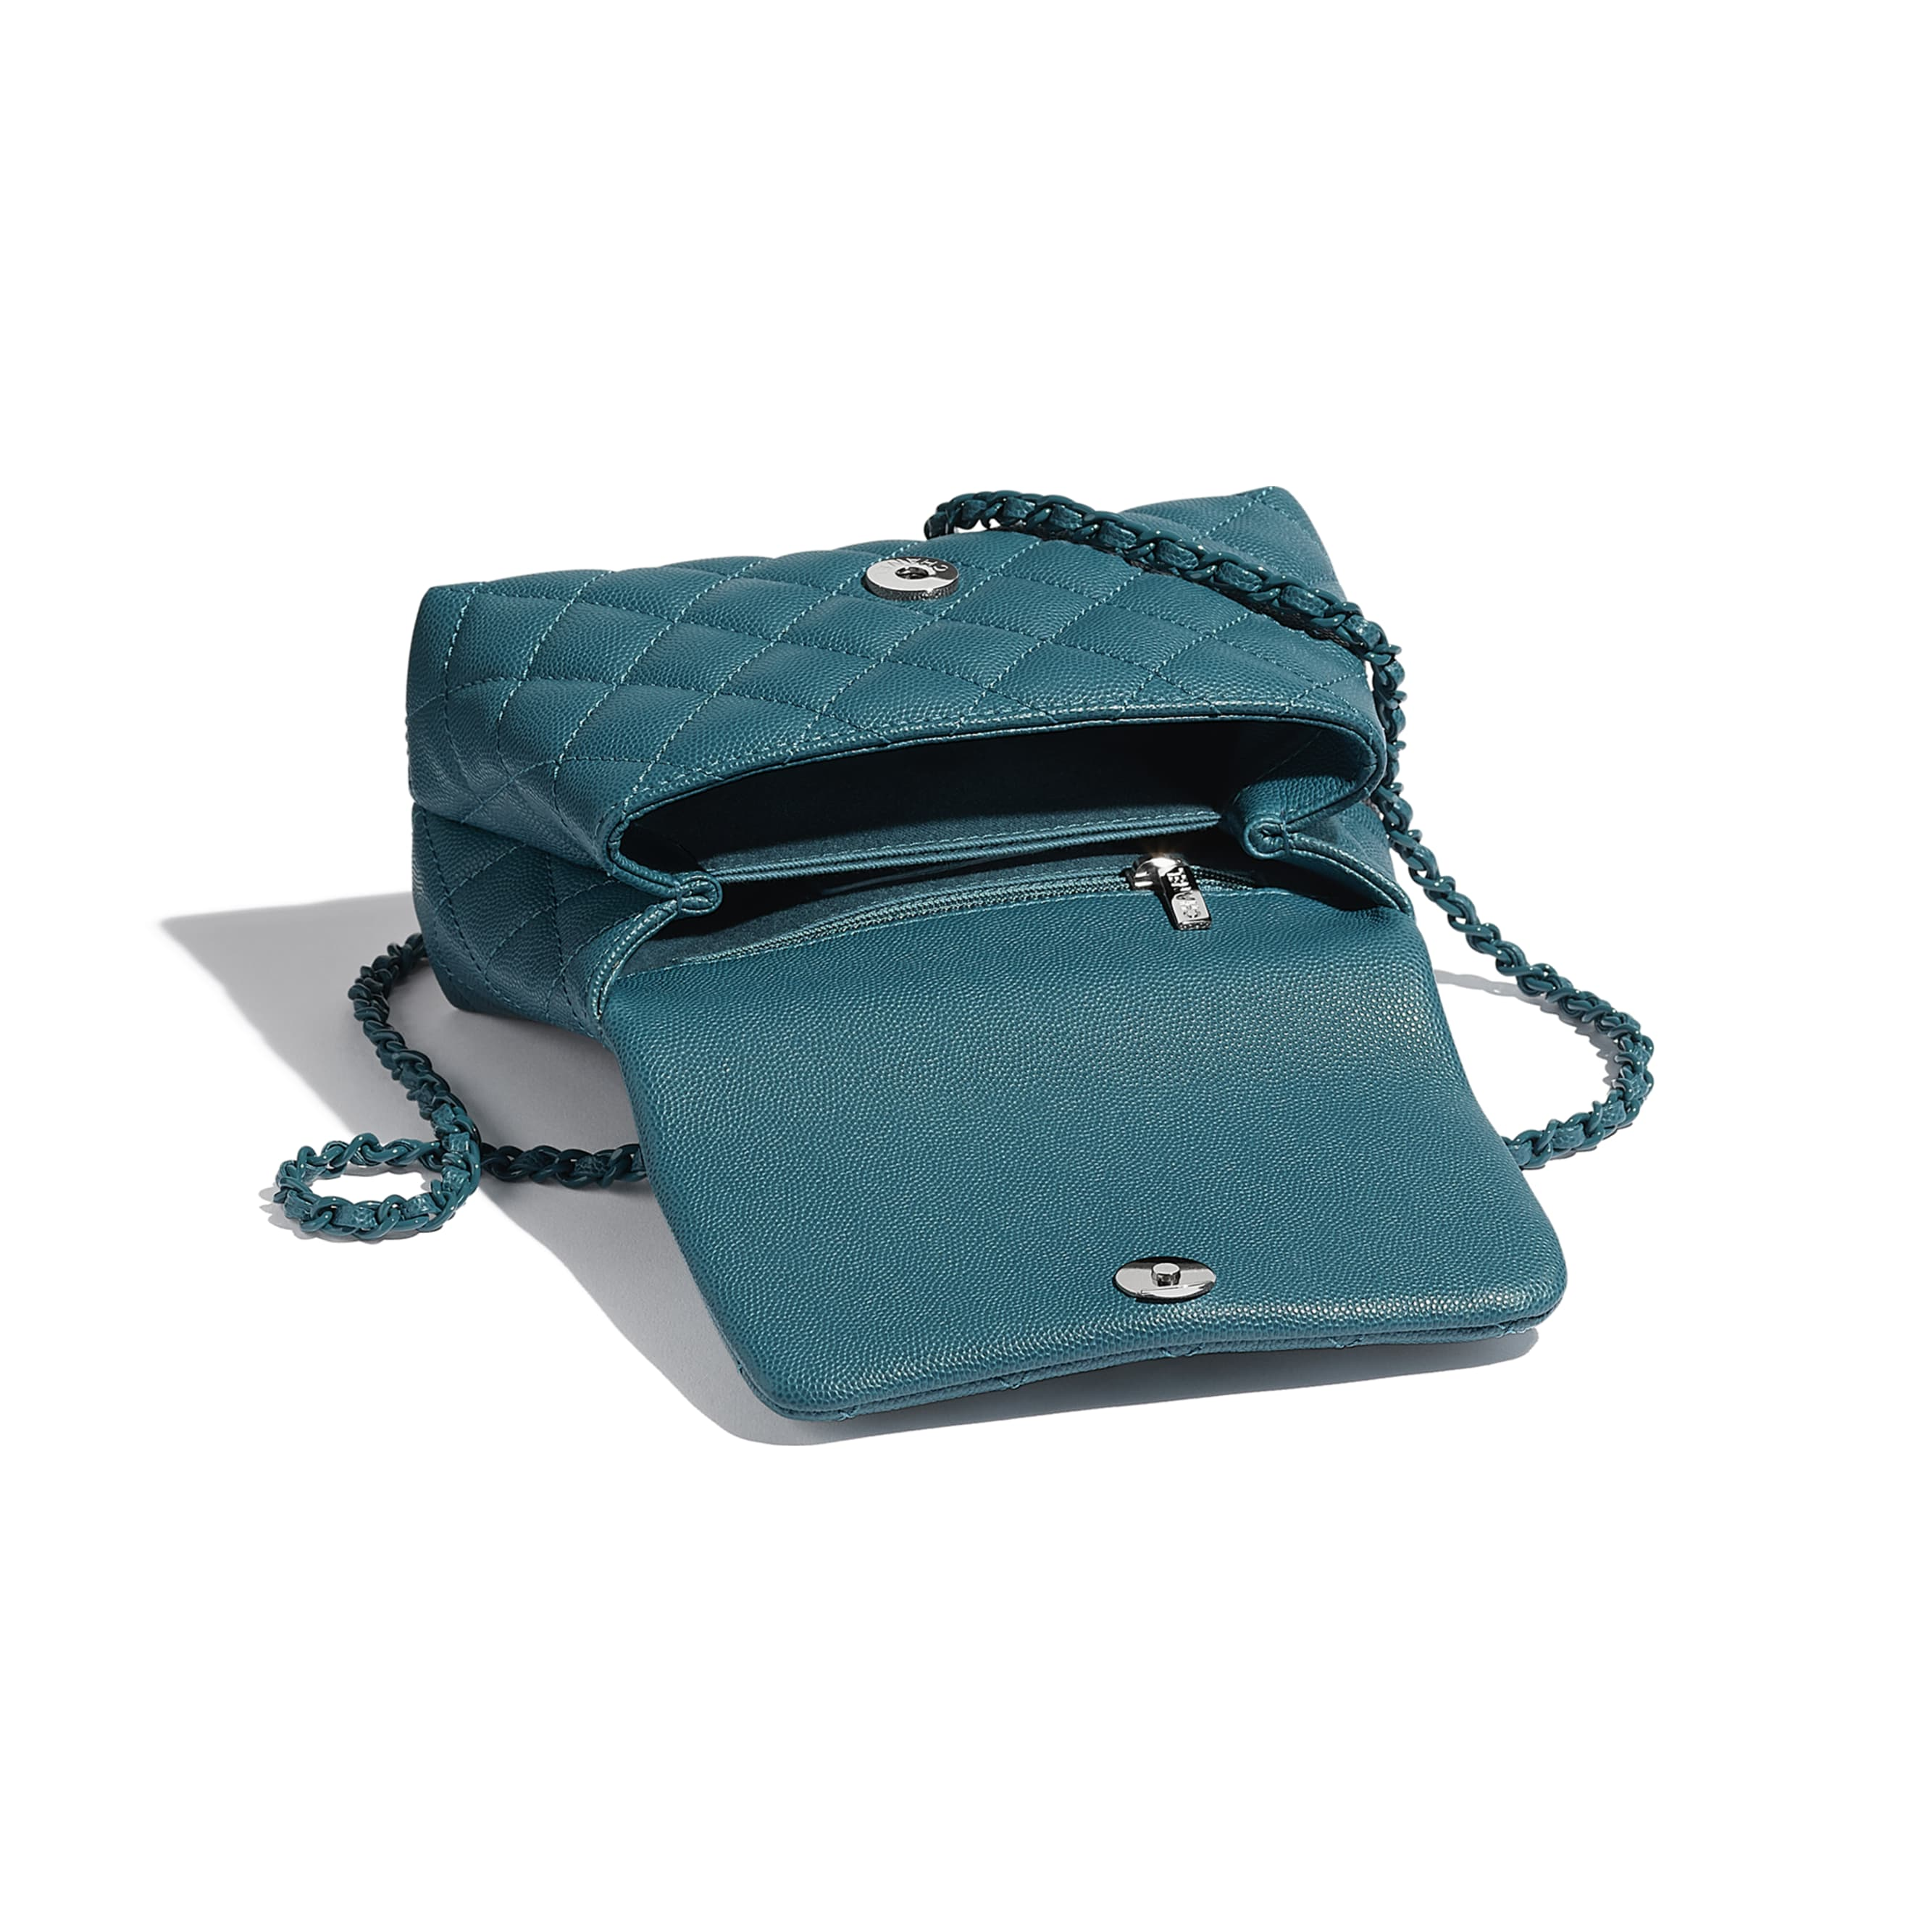 Mini Flap Bag with Top Handle - Turquoise - Grained Calfskin & Lacquered Metal - CHANEL - Outra vista - ver a versão em tamanho standard